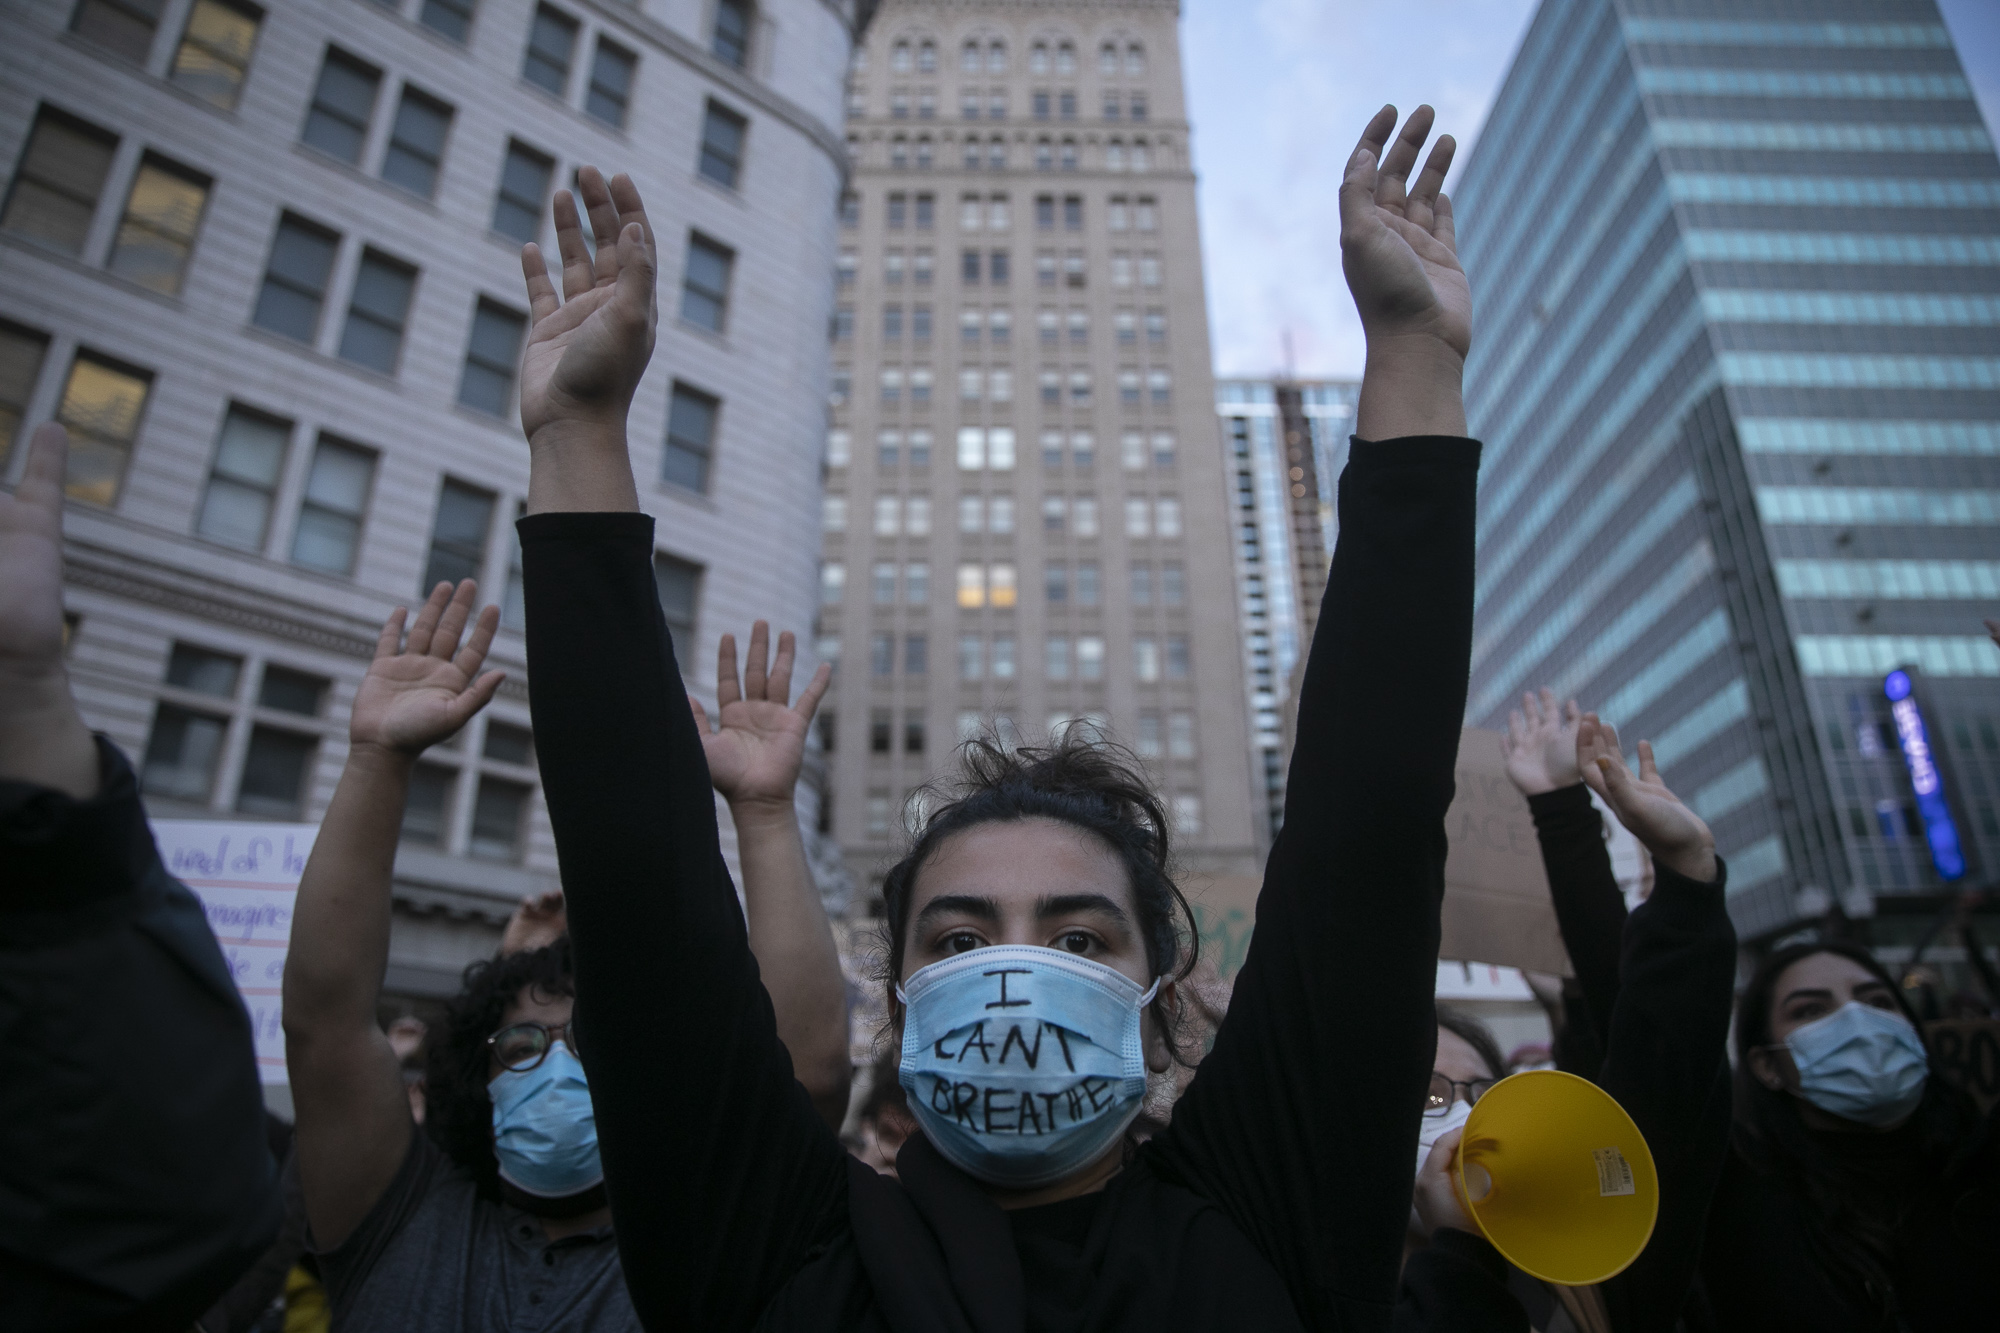 A protester wears a surgical mask with 'I can't breathe' written on the front as an organizer asks demonstrators to put their hands up on May 29, 2020 Downtown Oakland. Thousands took to the streets Friday night in solidarity with protesters in Minneapolis against the killing of George Floyd by Minneapolis police earlier this week. Photo by Anne Wernikoff for CalMatters